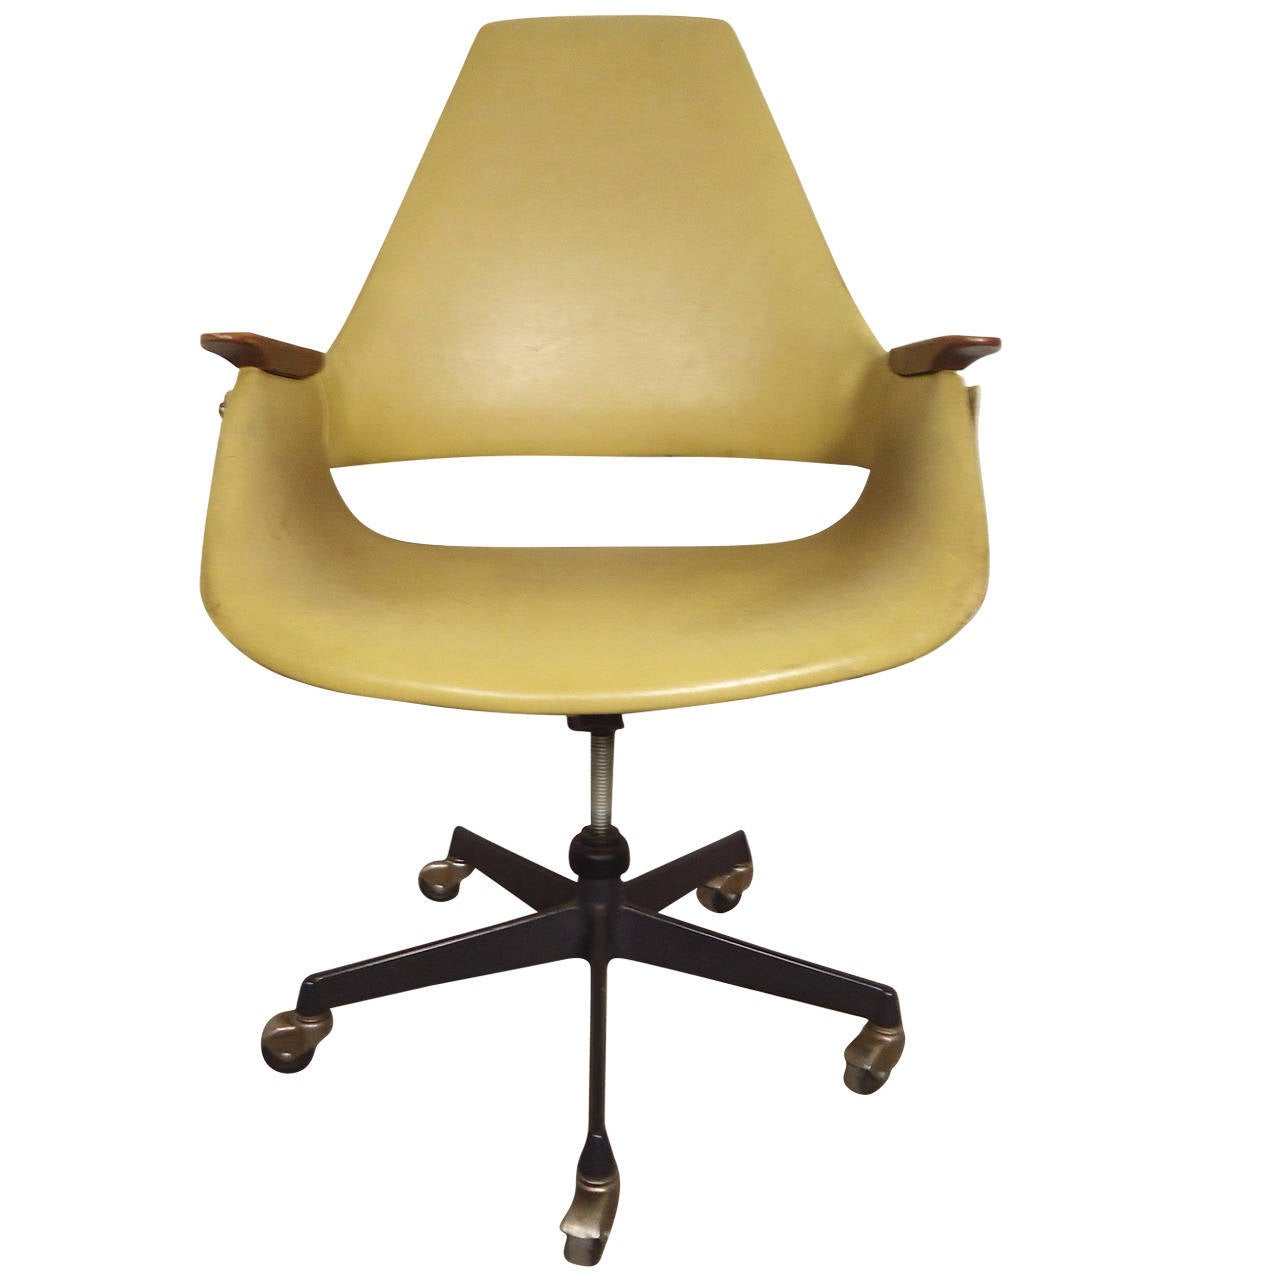 Mid century modern rolling desk chair at 1stdibs for Modern furniture chairs